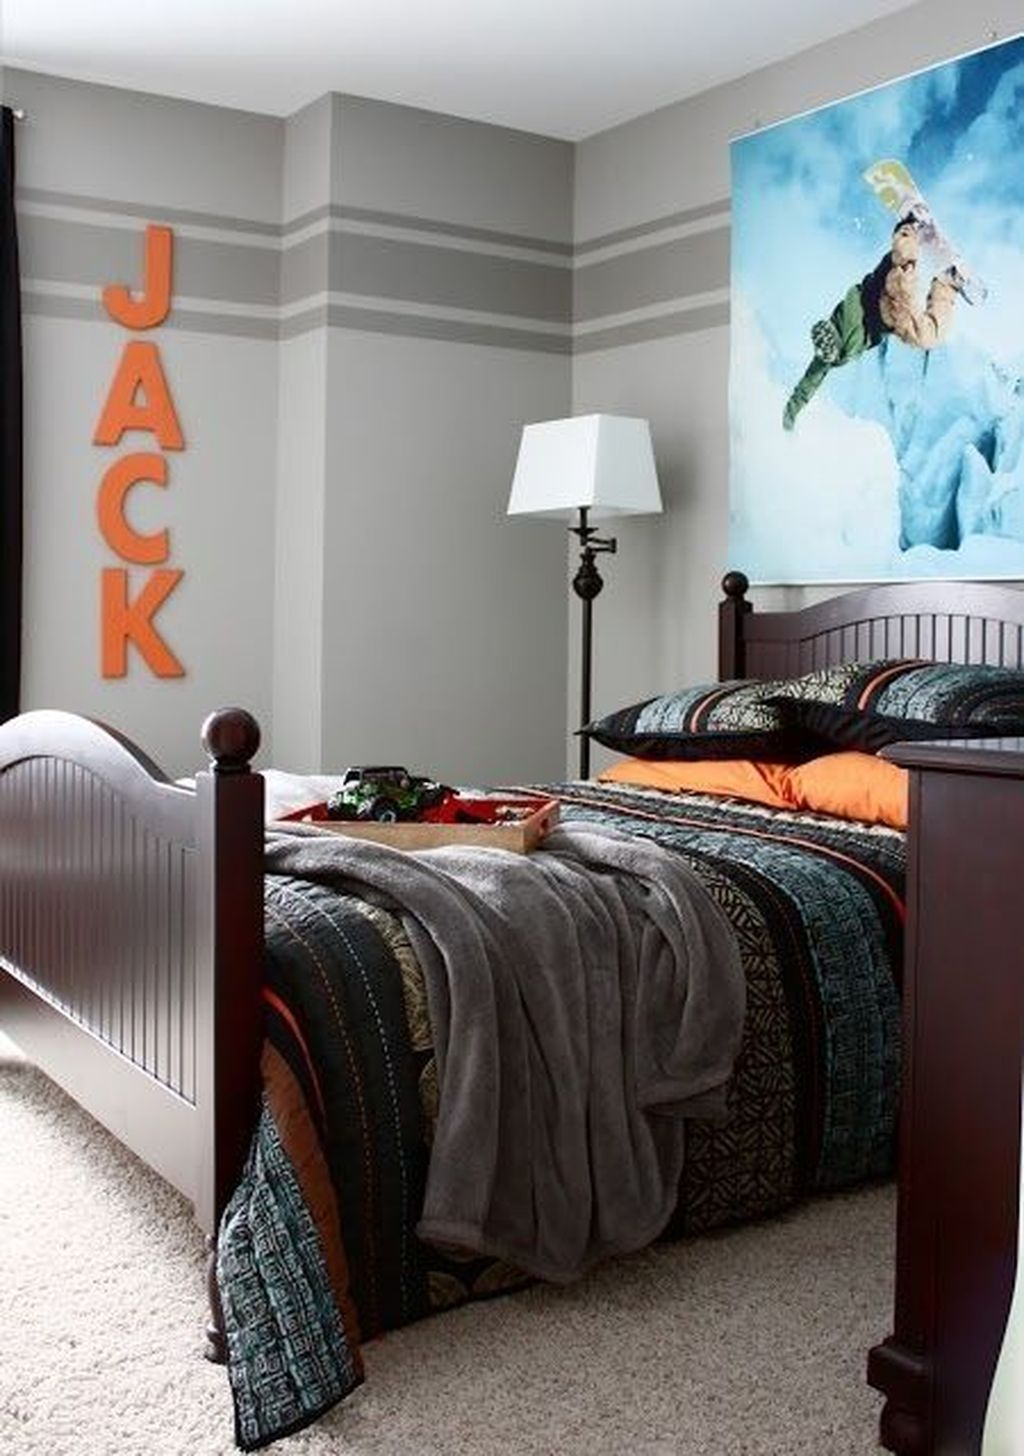 30 stunning bedroom decoratiion ideas for your boys